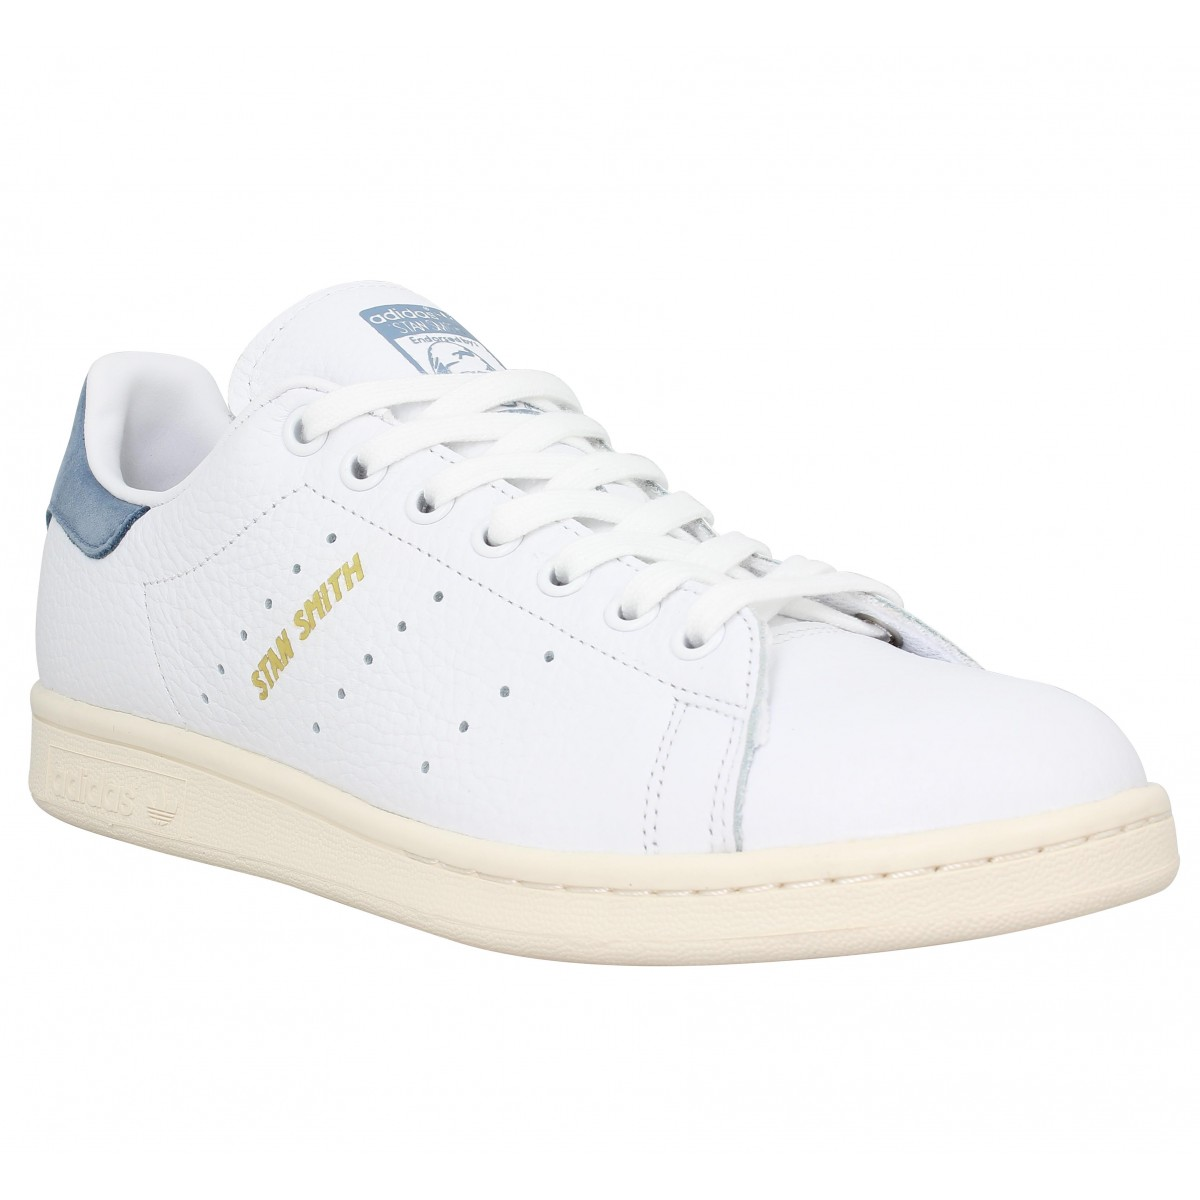 soldes adidas stan smith cuir homme blanc bleu homme fanny chaussures. Black Bedroom Furniture Sets. Home Design Ideas